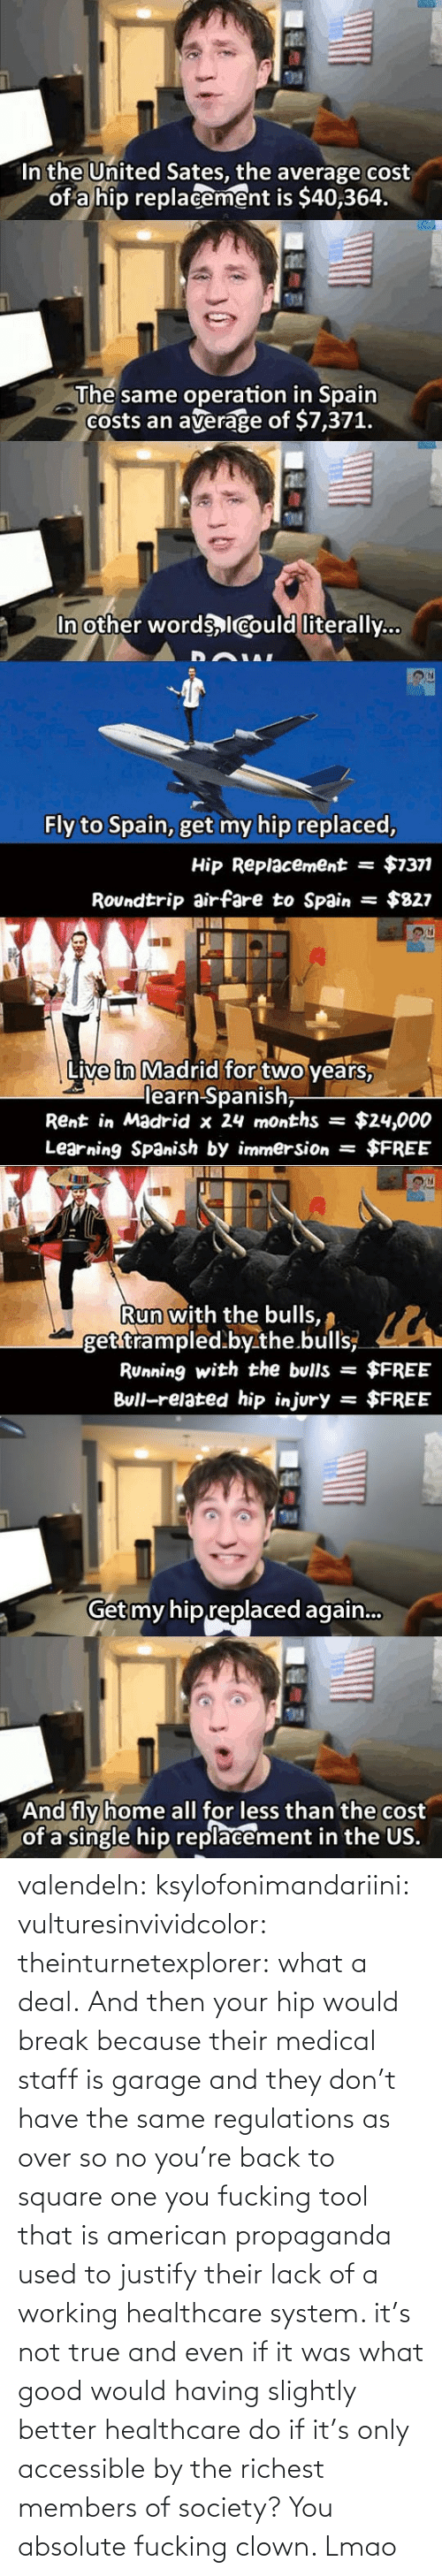 Tool: valendeln:  ksylofonimandariini:  vulturesinvividcolor:   theinturnetexplorer:  what a deal.   And then your hip would break because their medical staff is garage and they don't have the same regulations as over so no you're back to square one you fucking tool    that is american propaganda used to justify their lack of a working healthcare system. it's not true and even if it was what good would having slightly better healthcare do if it's only accessible by the richest members of society?      You absolute fucking clown. Lmao